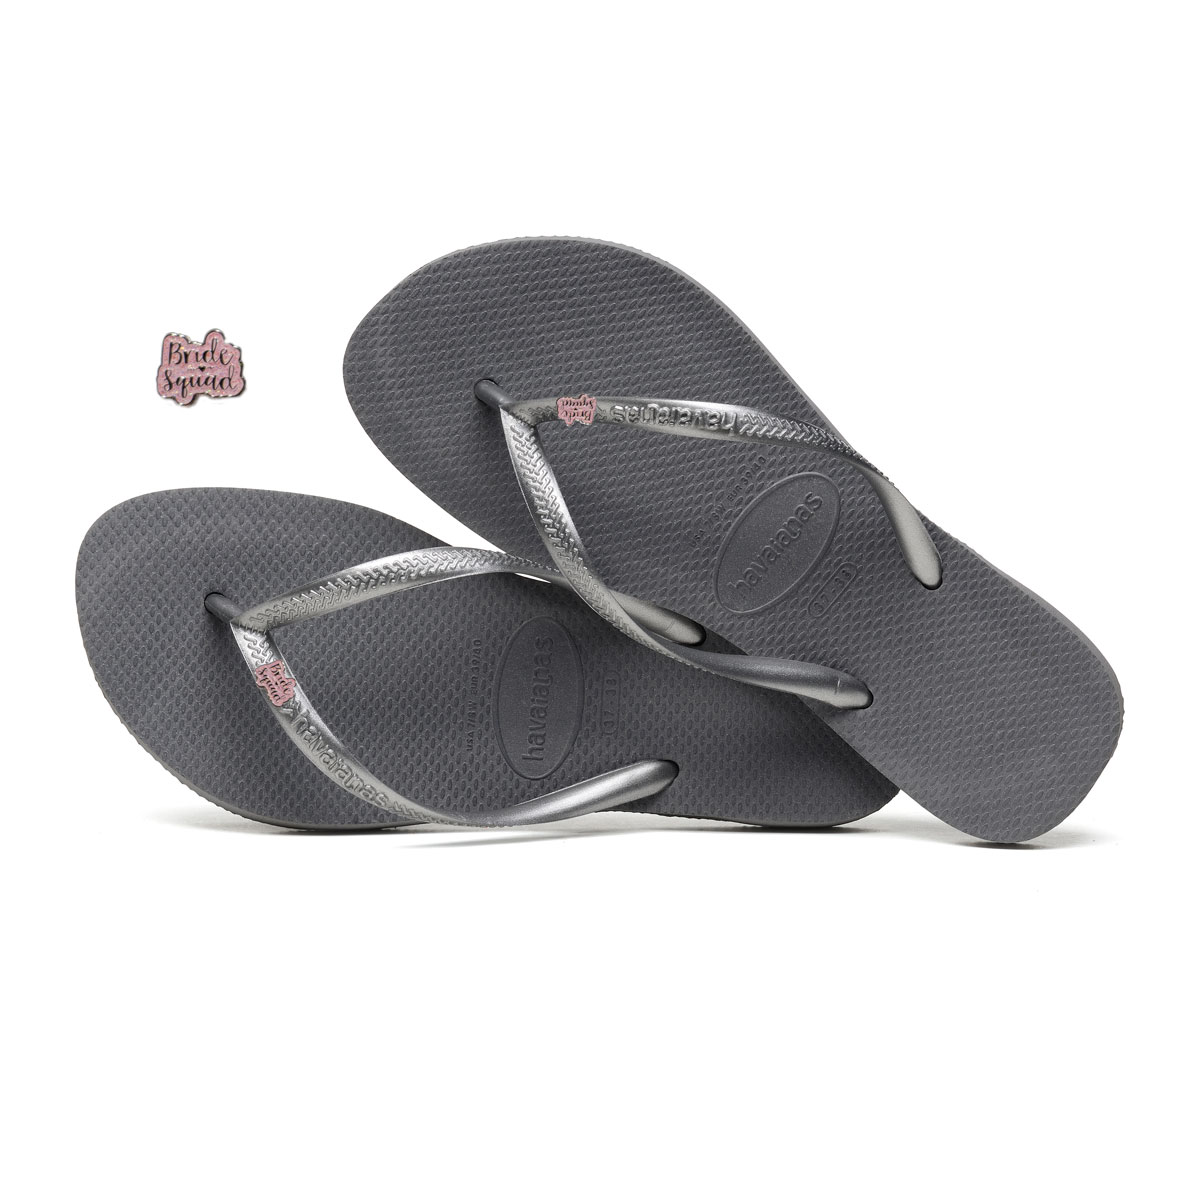 Havaianas Slim Silver Flip Flops with Pink Glitter Bride Squad Charm